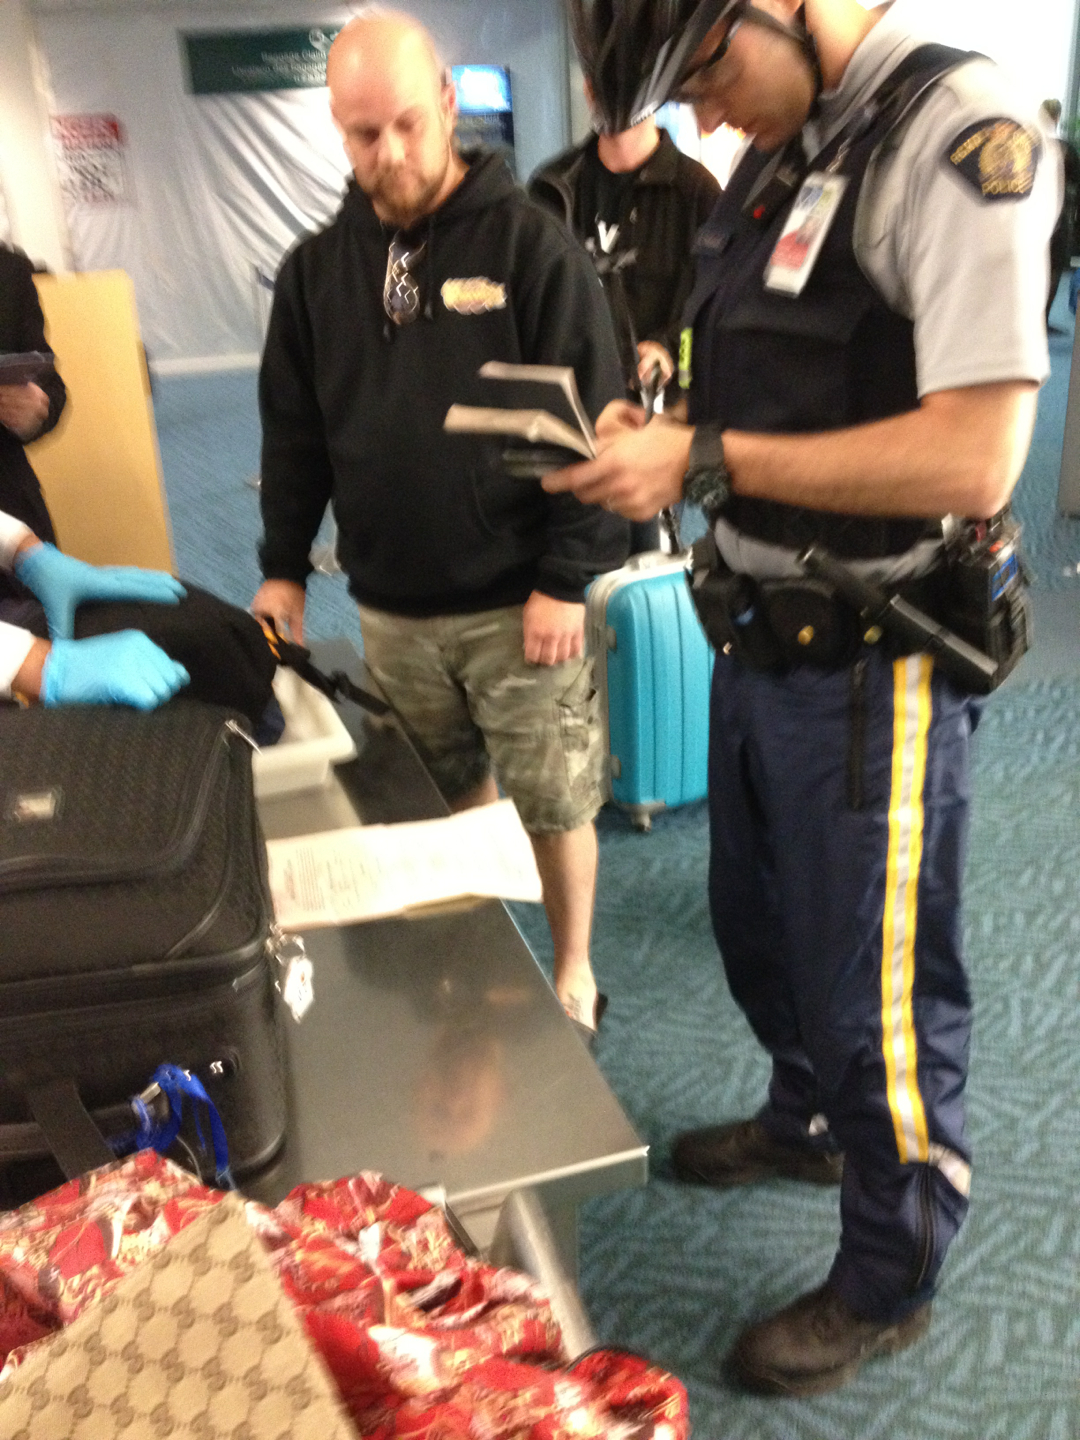 Is That Marijuana In Your Suitcase? Why yes it is officer!!!! lol